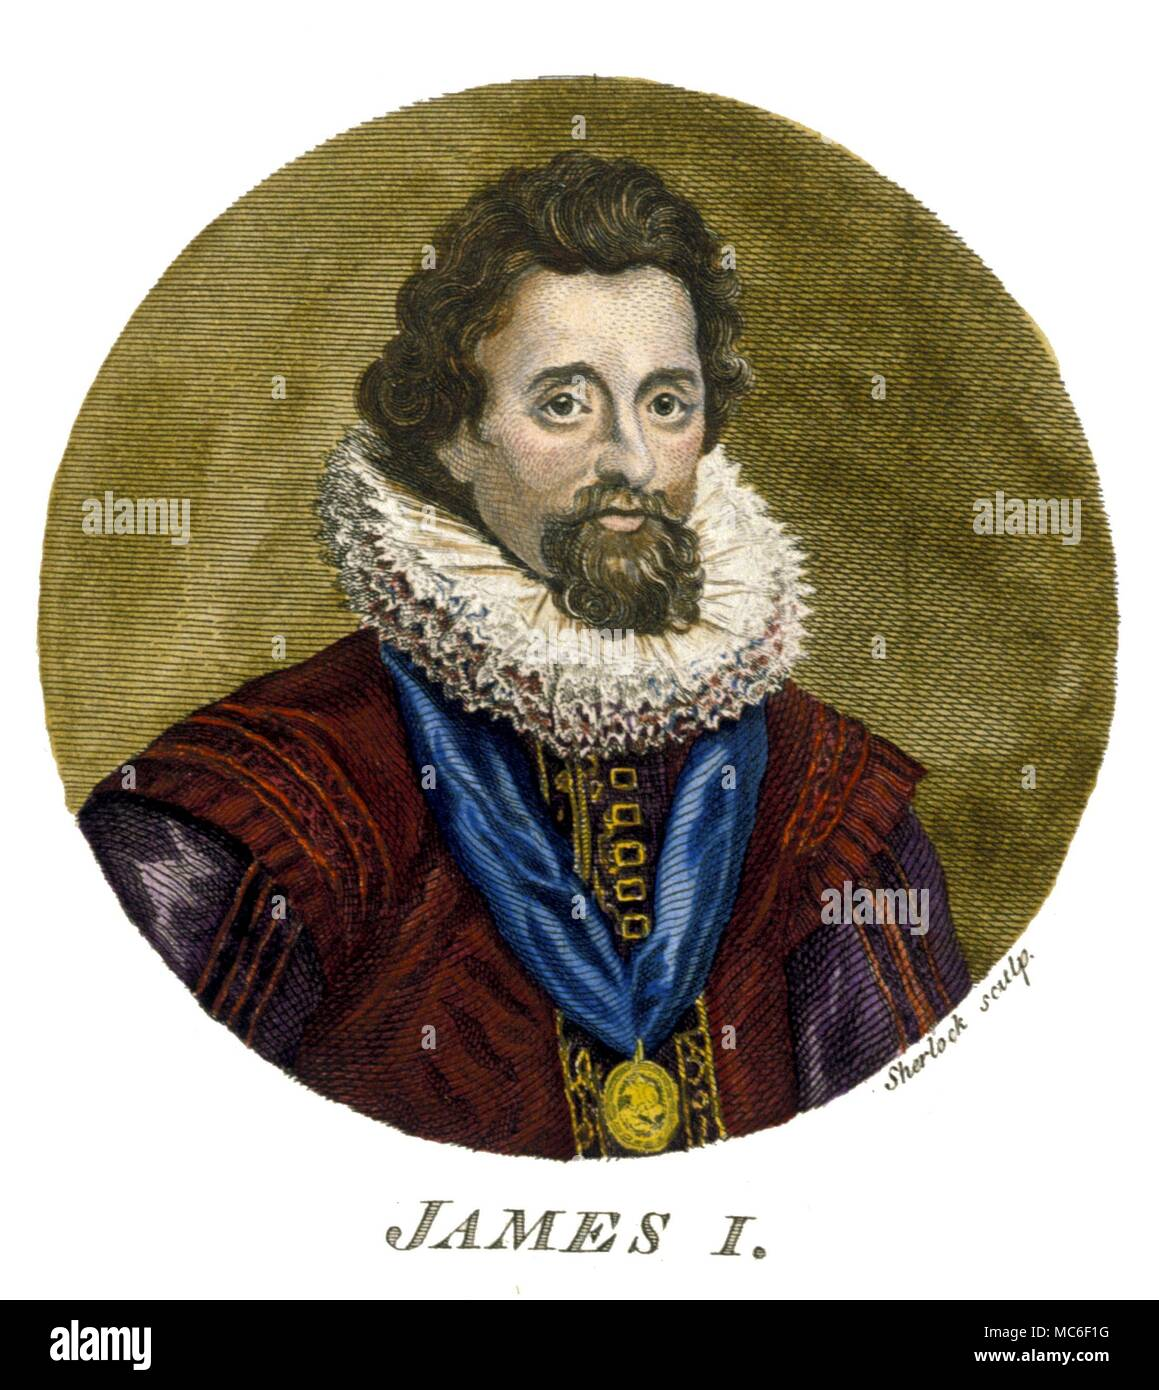 Occultists -  King James I of England (James IV of Scotland) (1566-1625) was the author of 'Daemonologie', a violent text against witchcraft - Stock Image